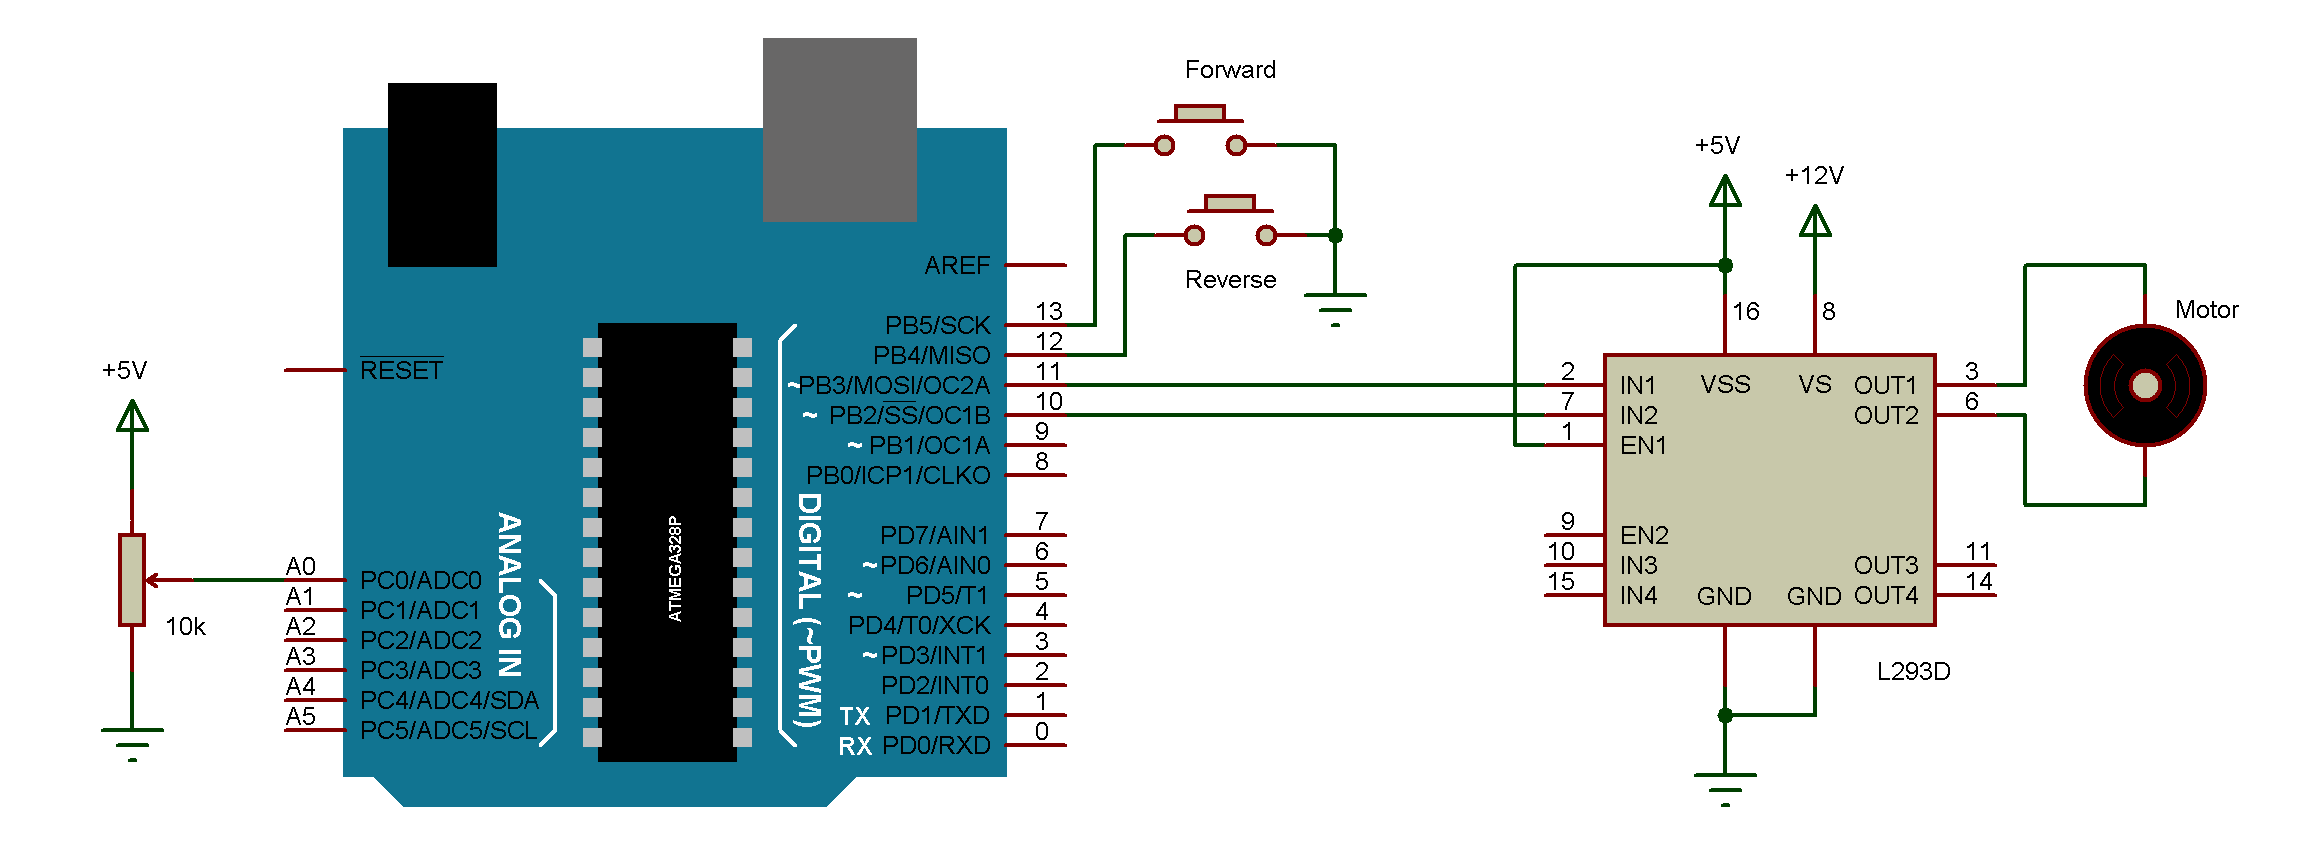 Dc motor control with arduino for Schematic diagram of dc motor